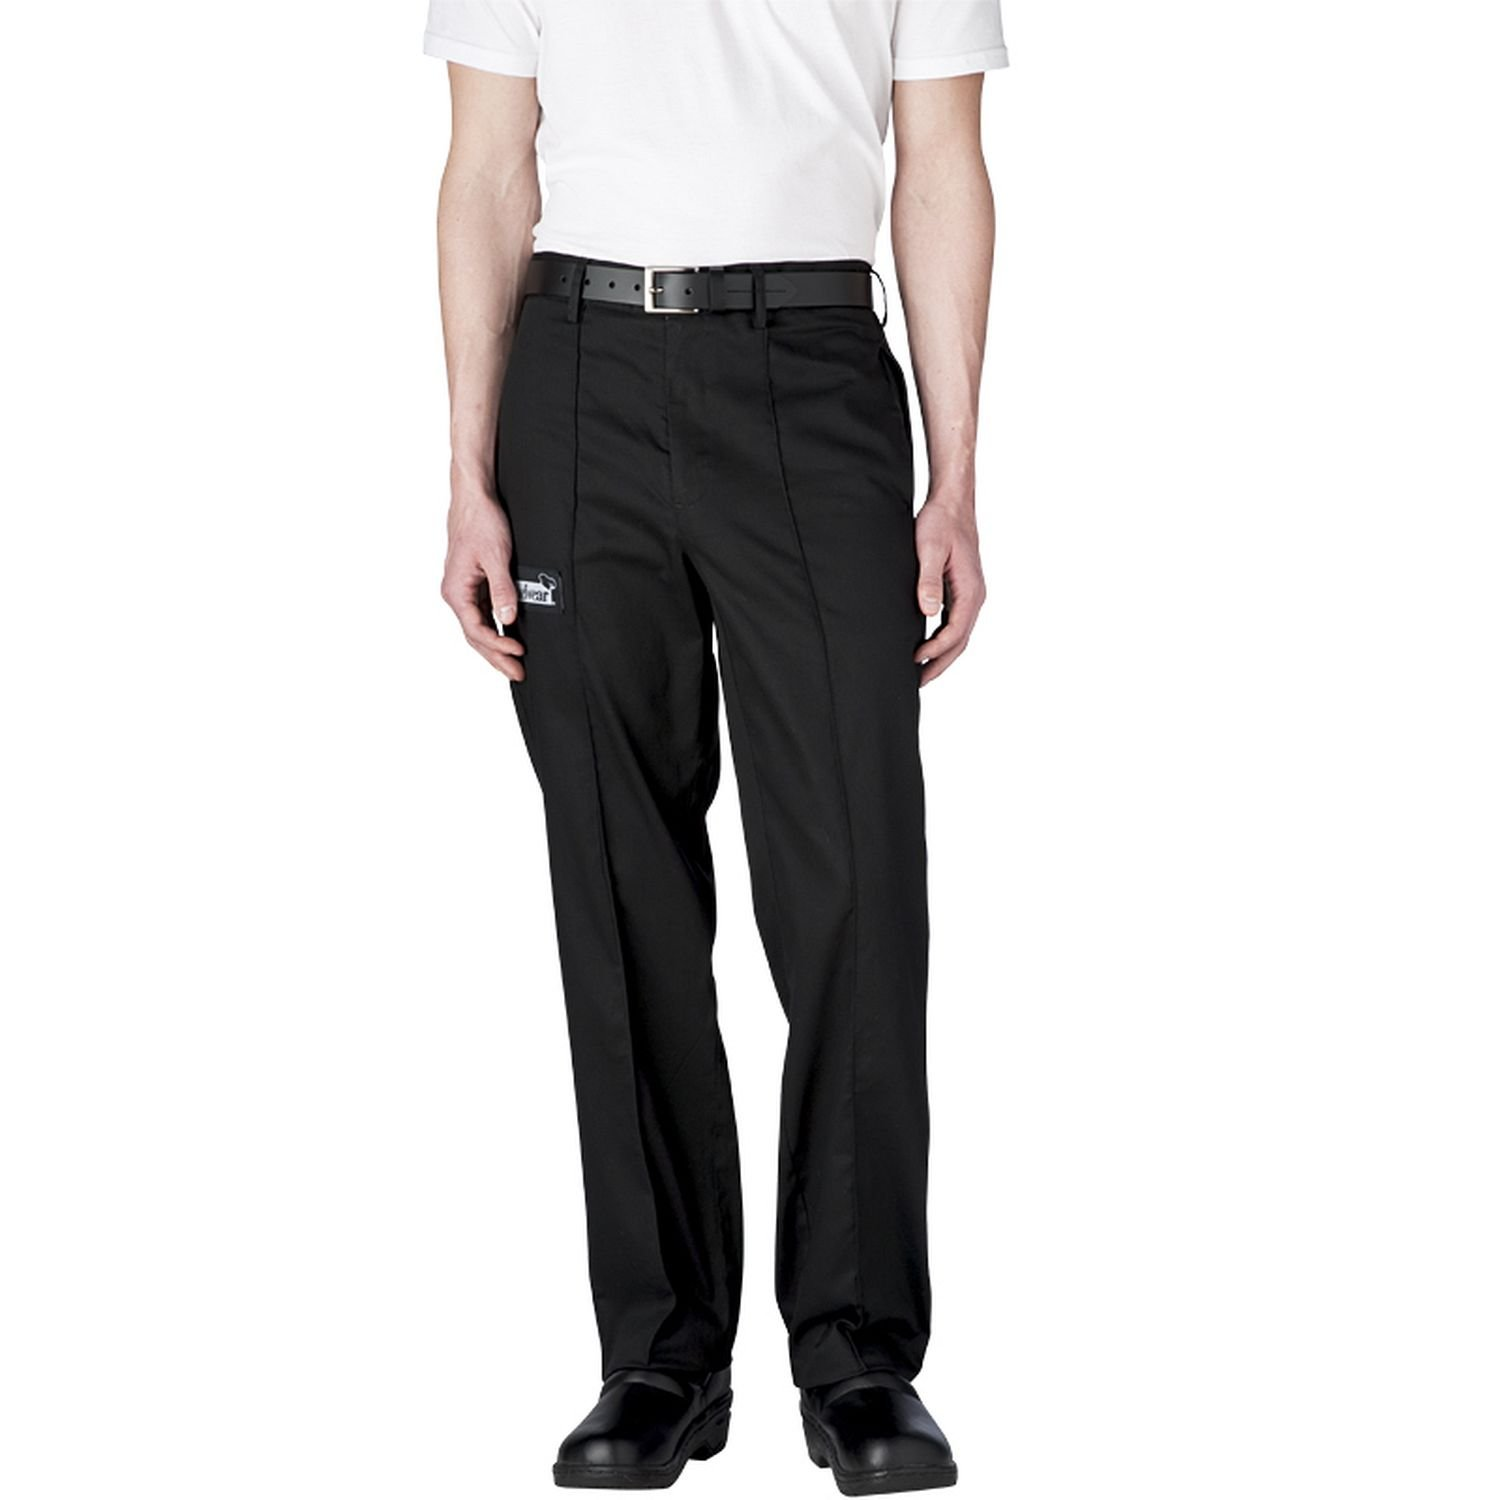 Chefwear Tailored Cotton Chef Pants 5X-Large Black by Chefwear